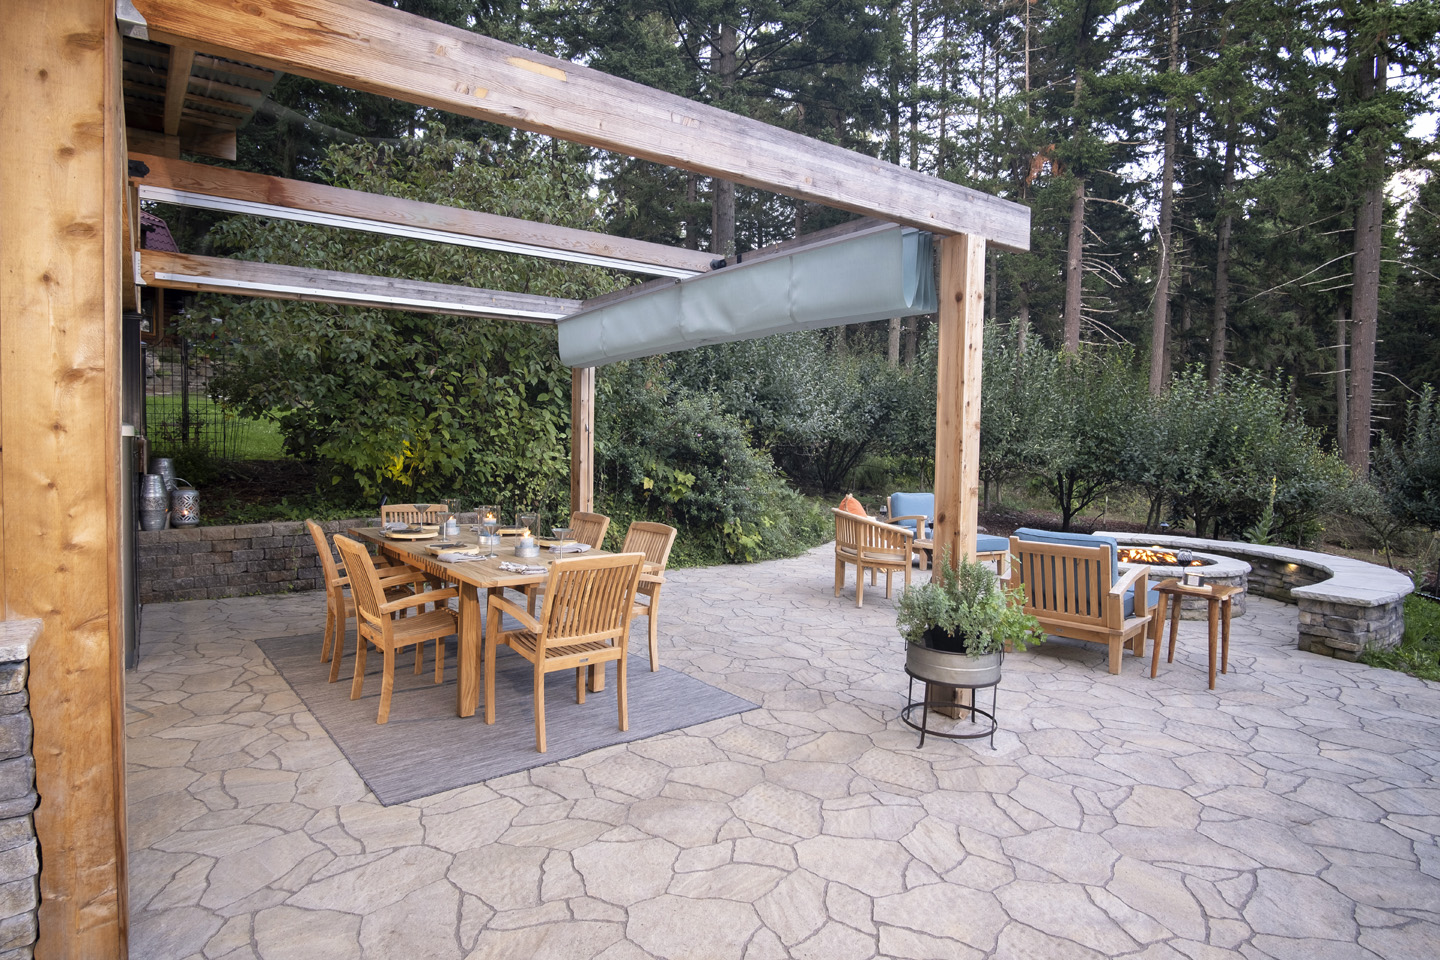 Retractable Awning in Backyard